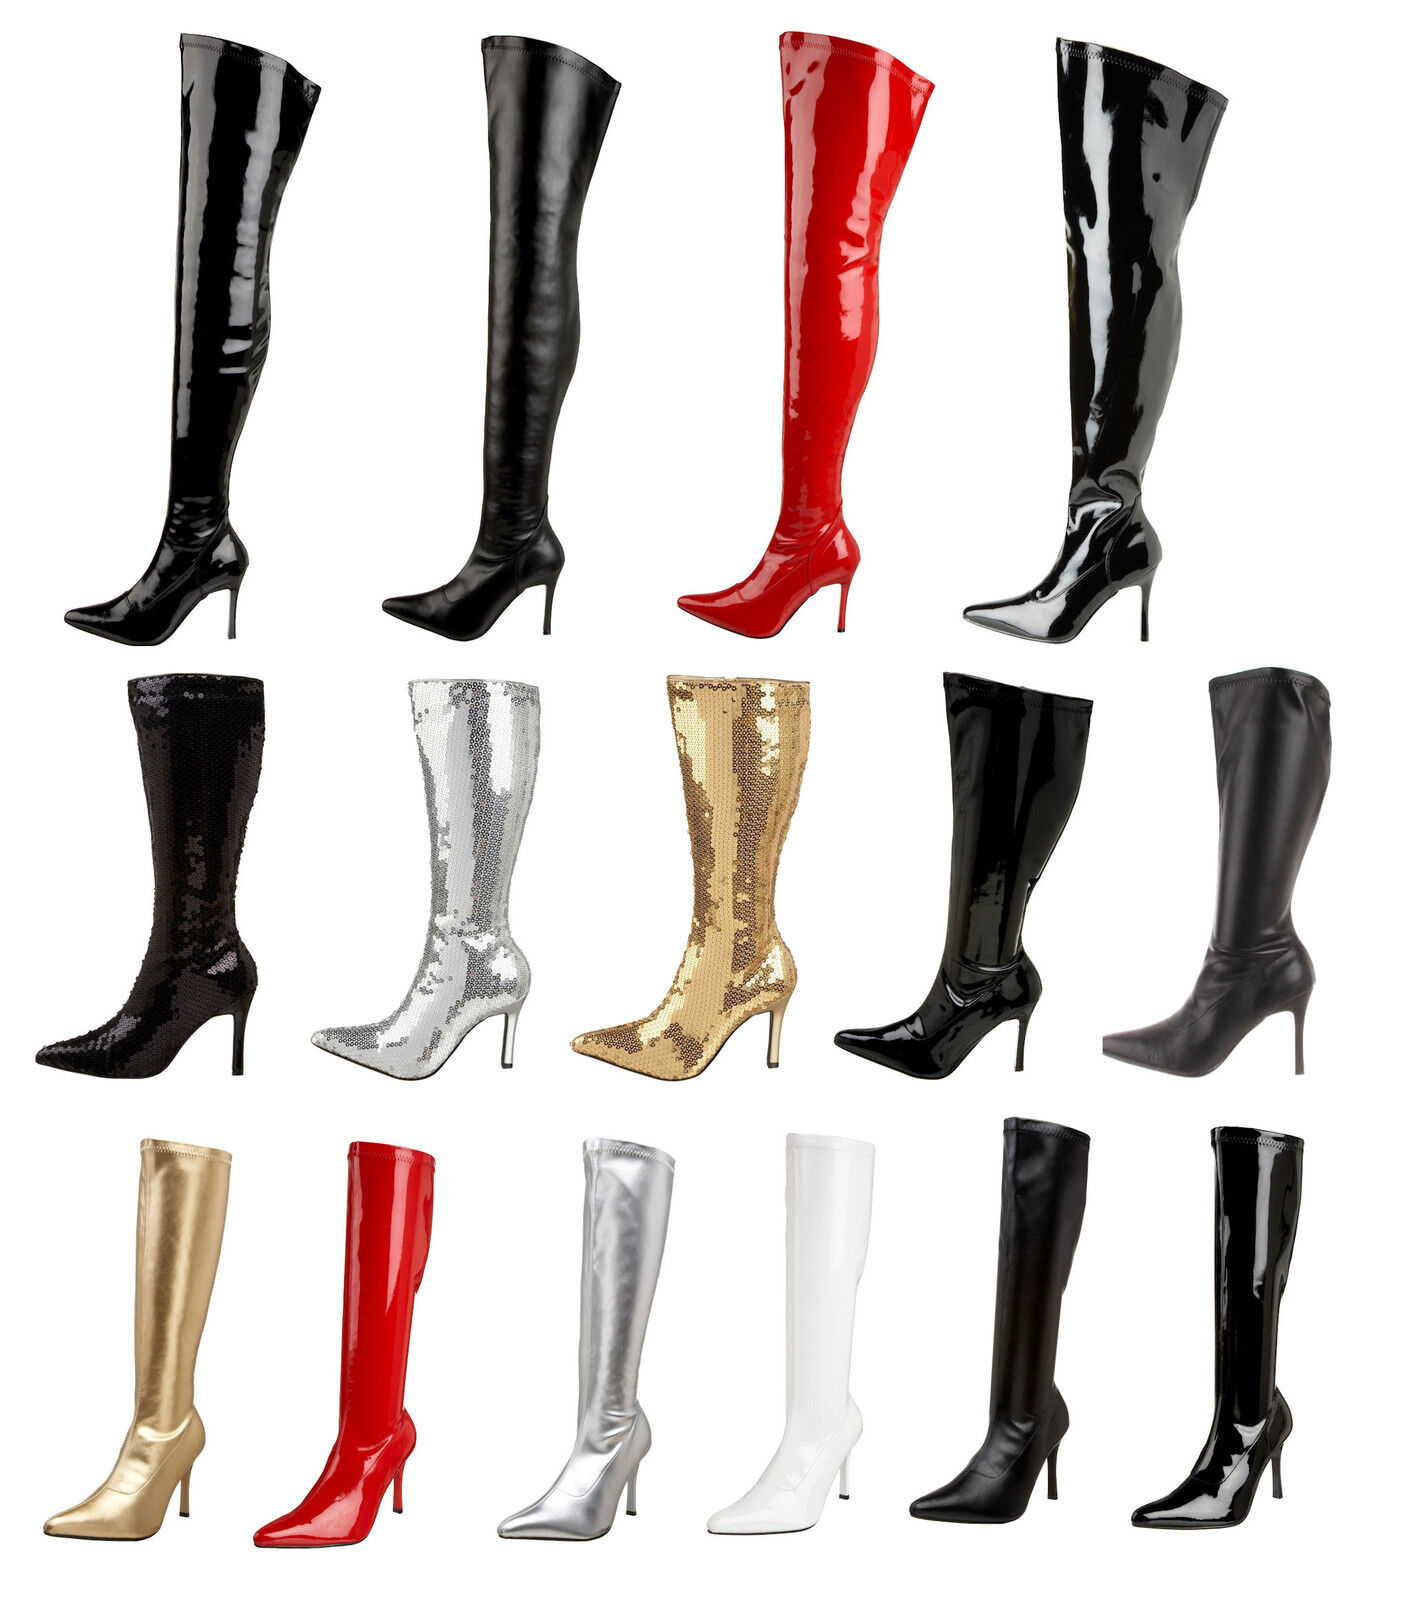 Pleaser Funtasma LUST 2000 2001SQ 2000X 3000 3000X Knee Thigh Boots